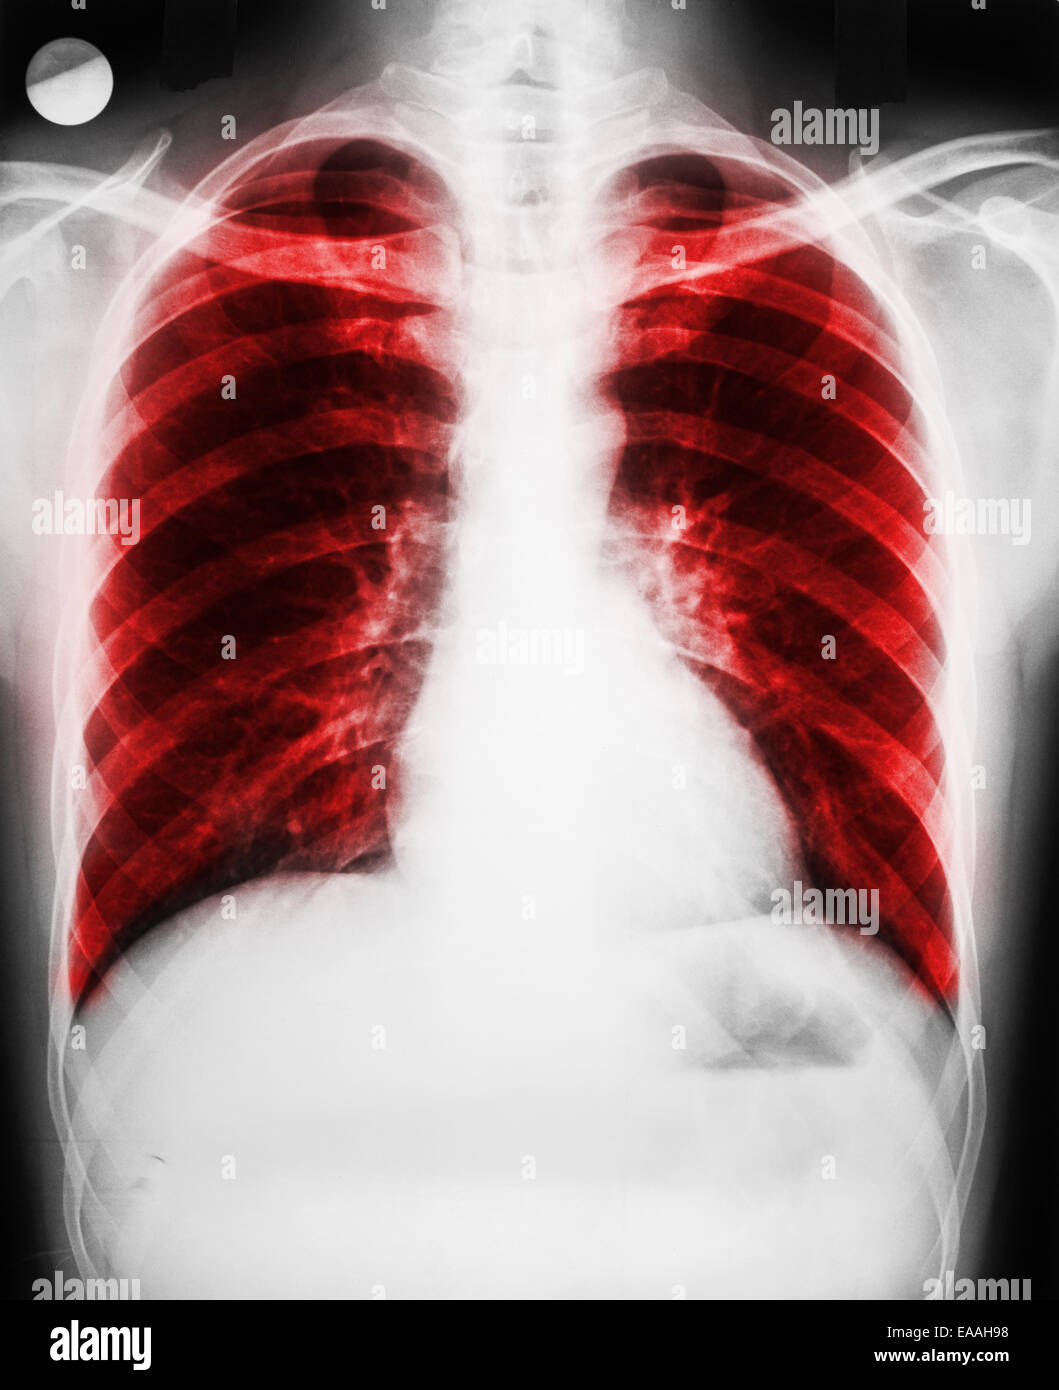 Pulmonary Disease On Patient Lungs X-Ray - Stock Image